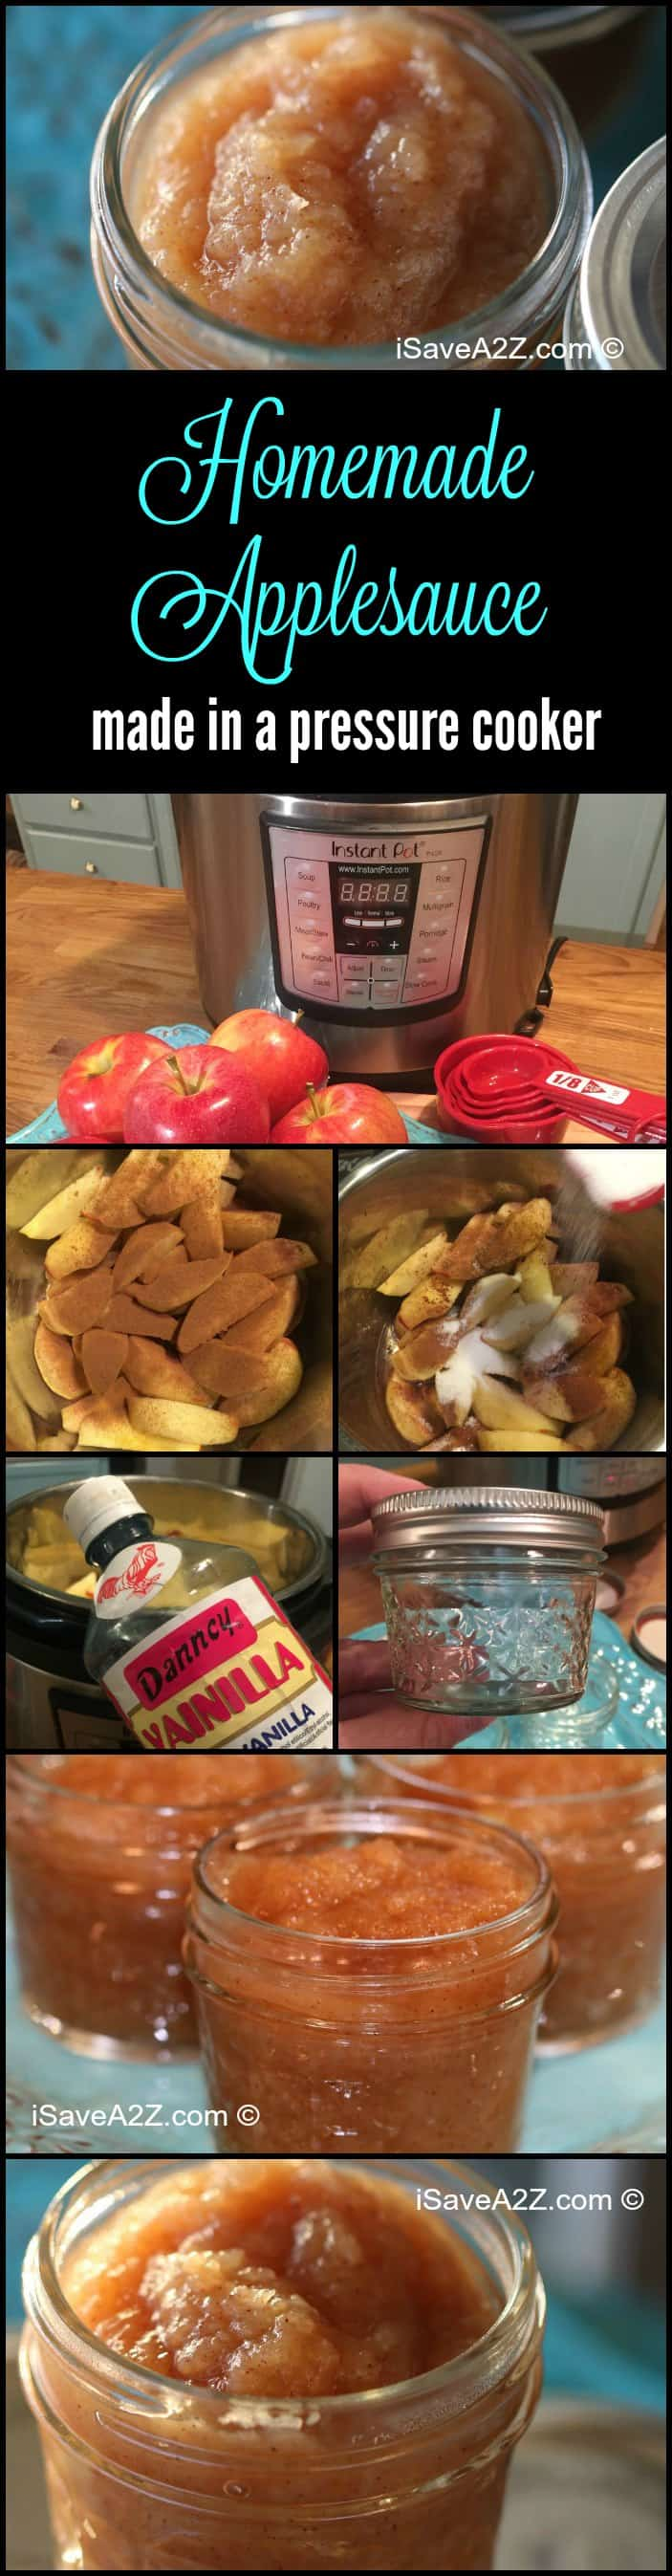 Homemade Pressure Cooker Applesauce Recipe